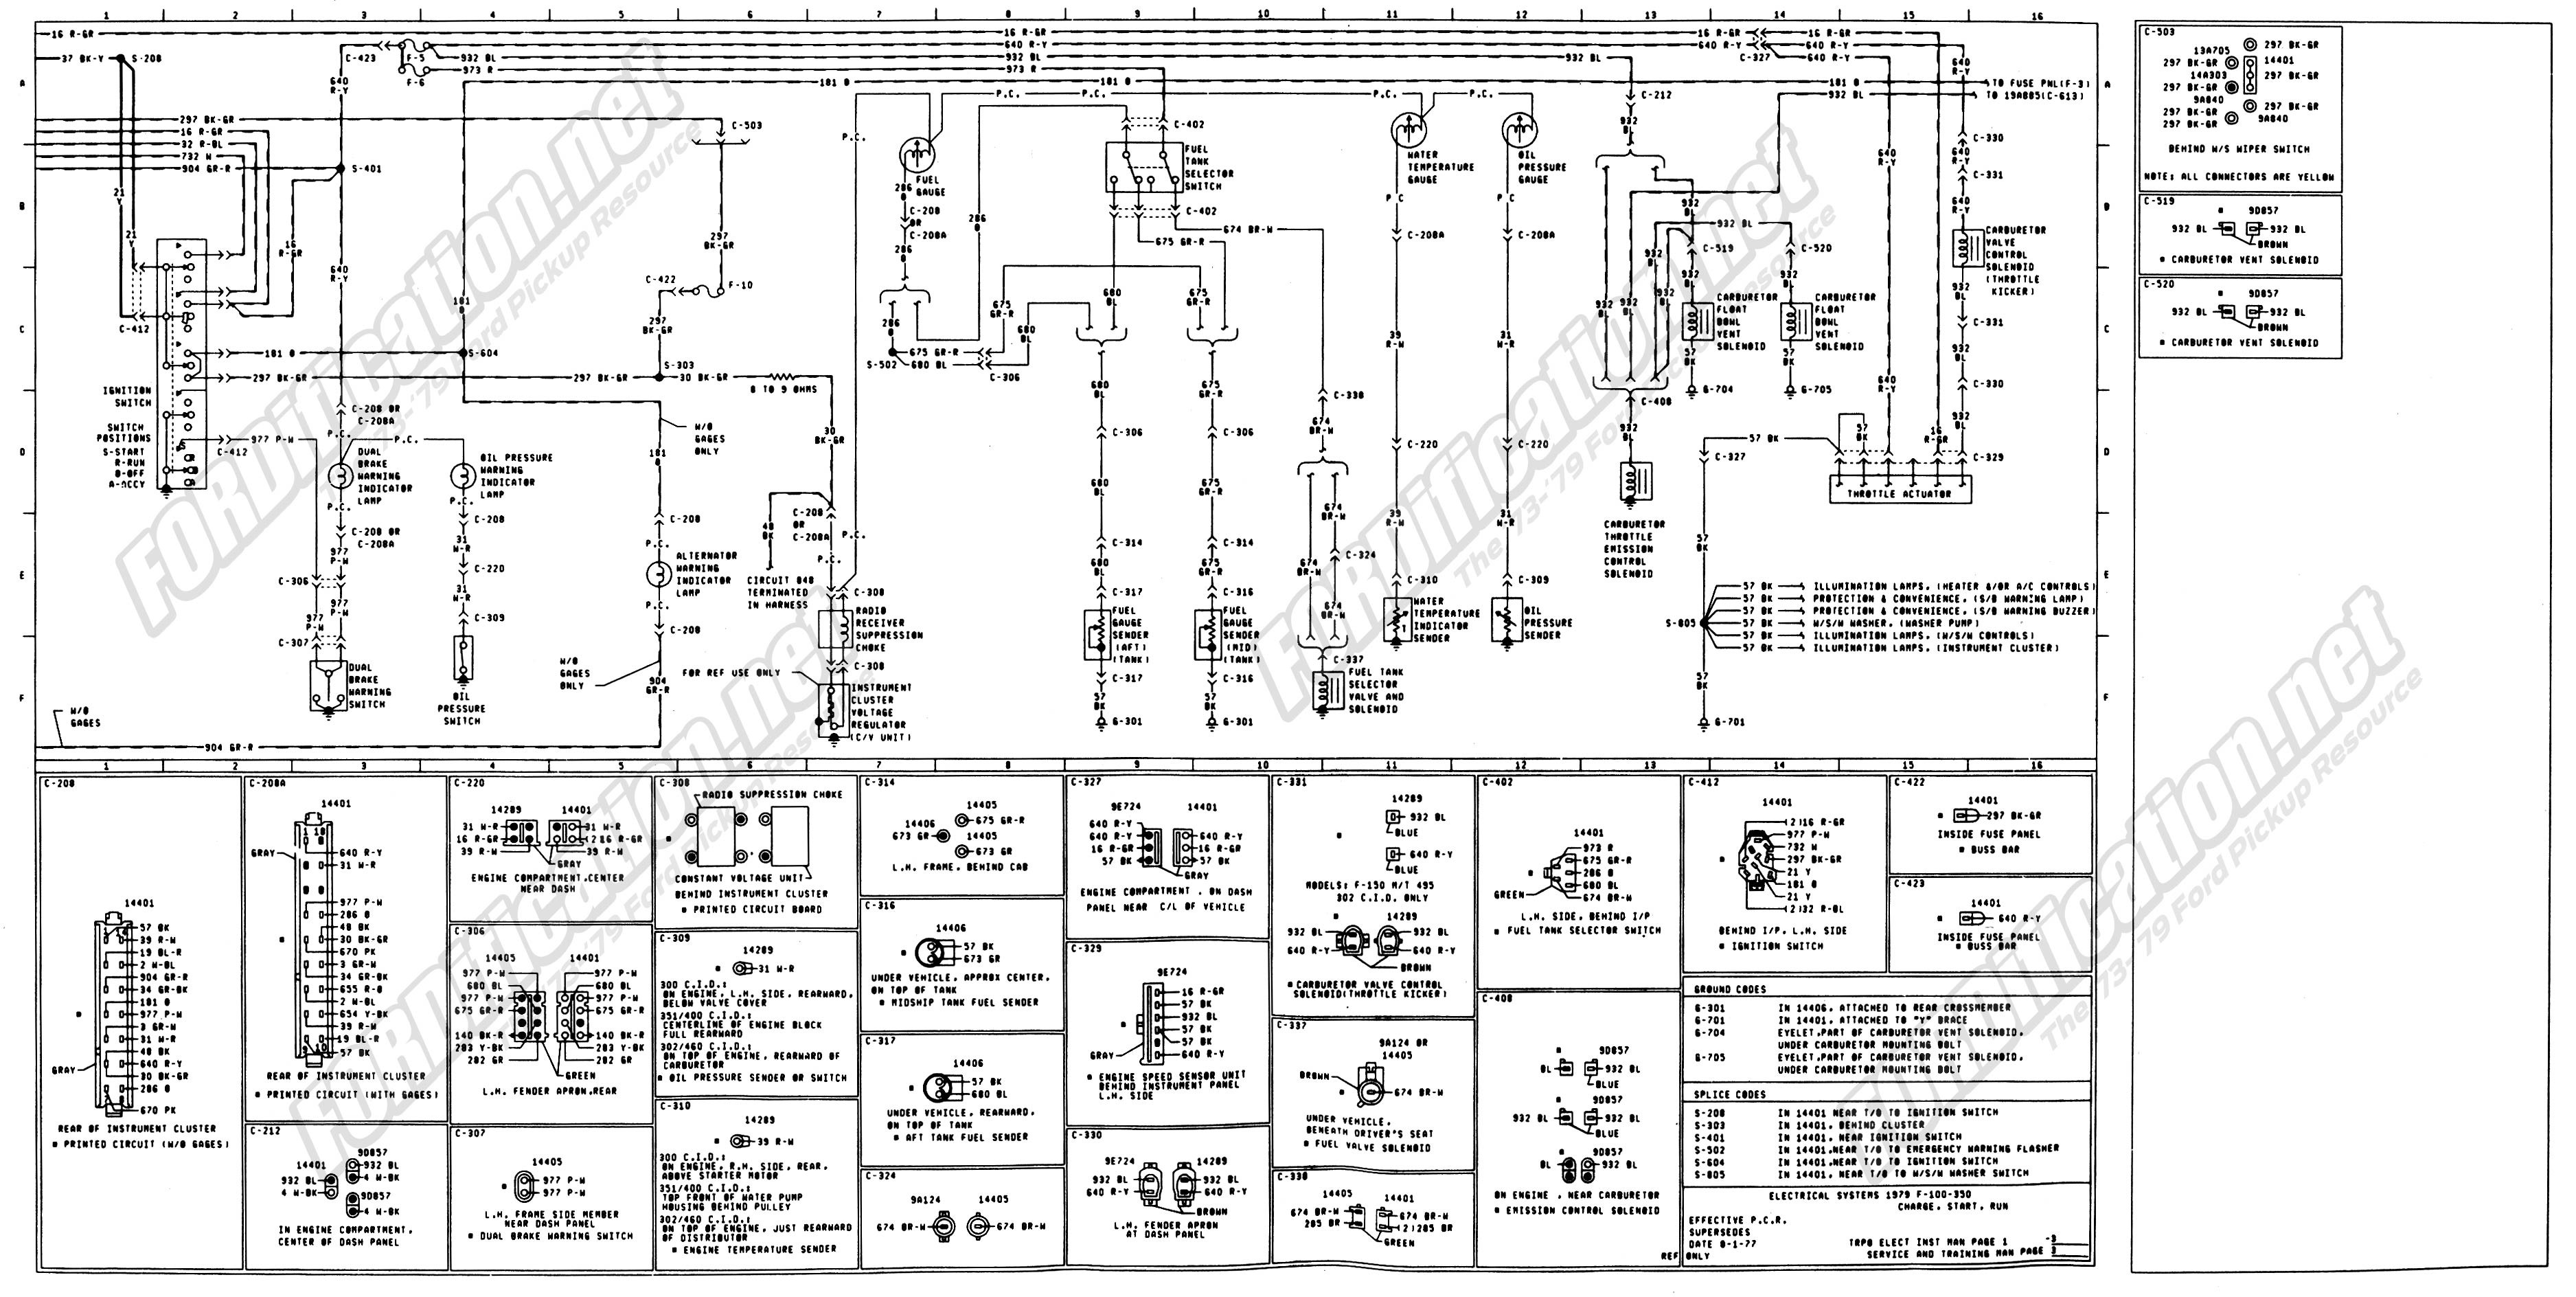 addition 2001 ford f 150 engine diagram together with 2001 ford f 150